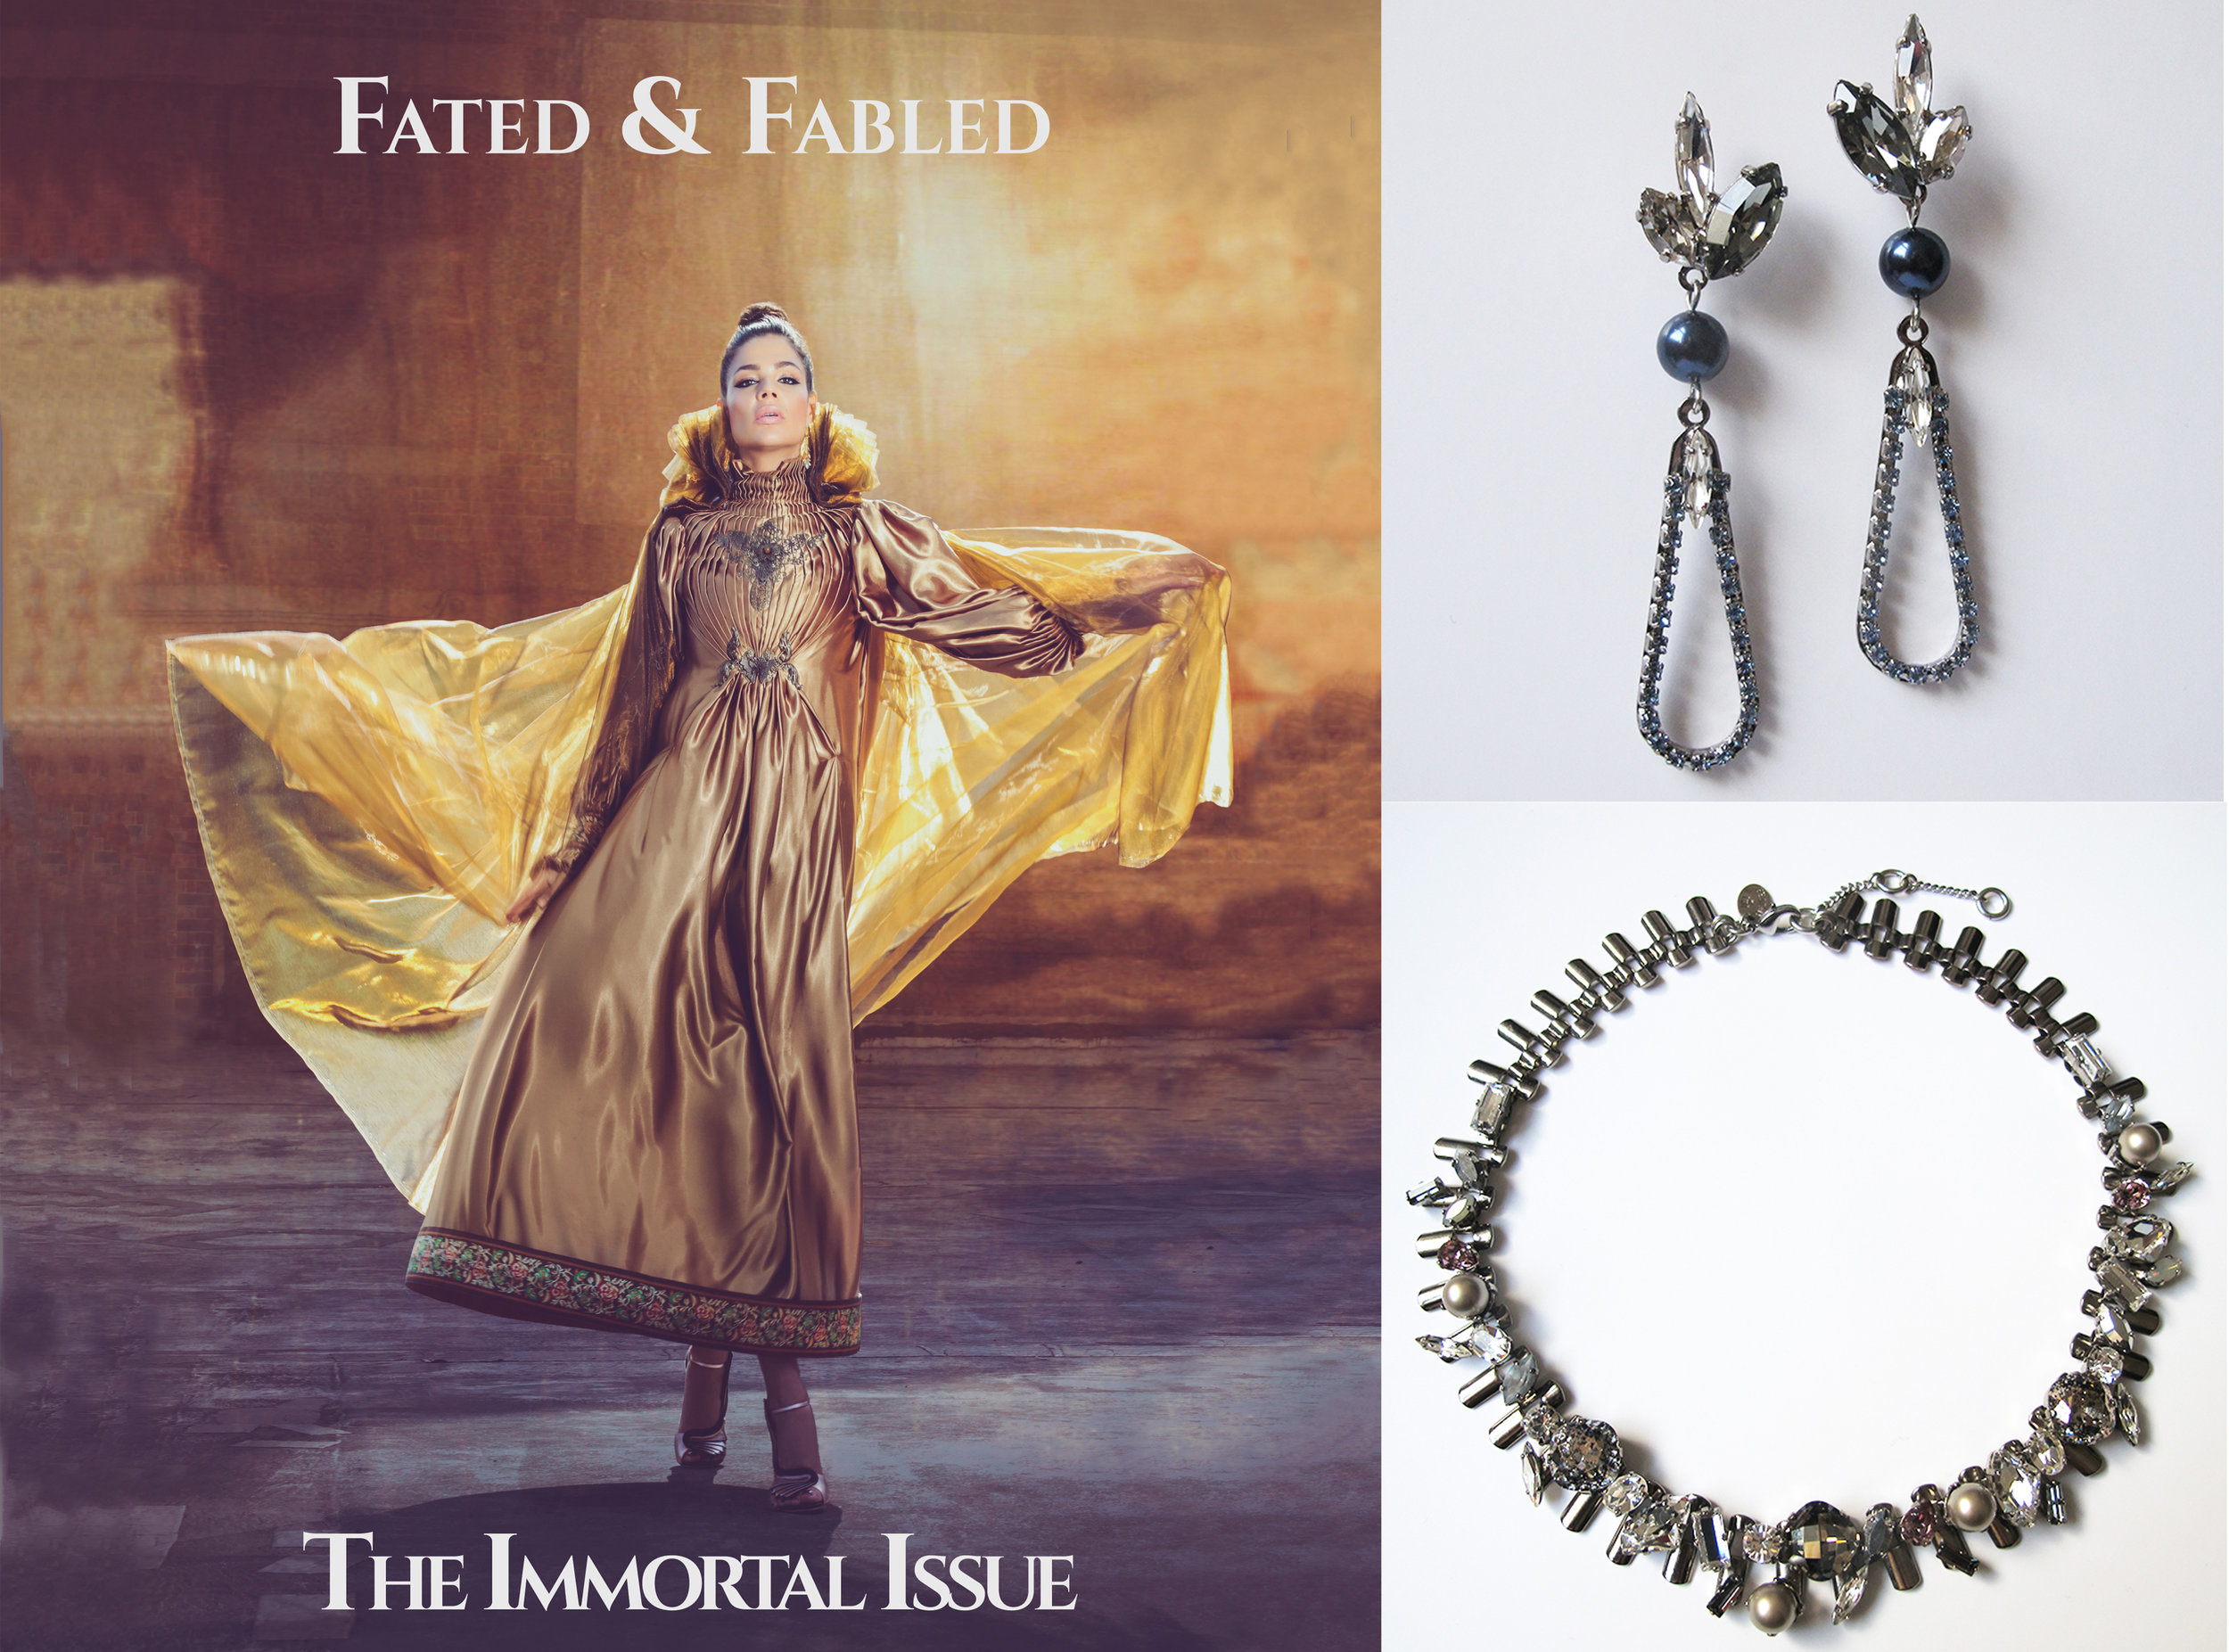 Fated & Fabled magazine September 2017